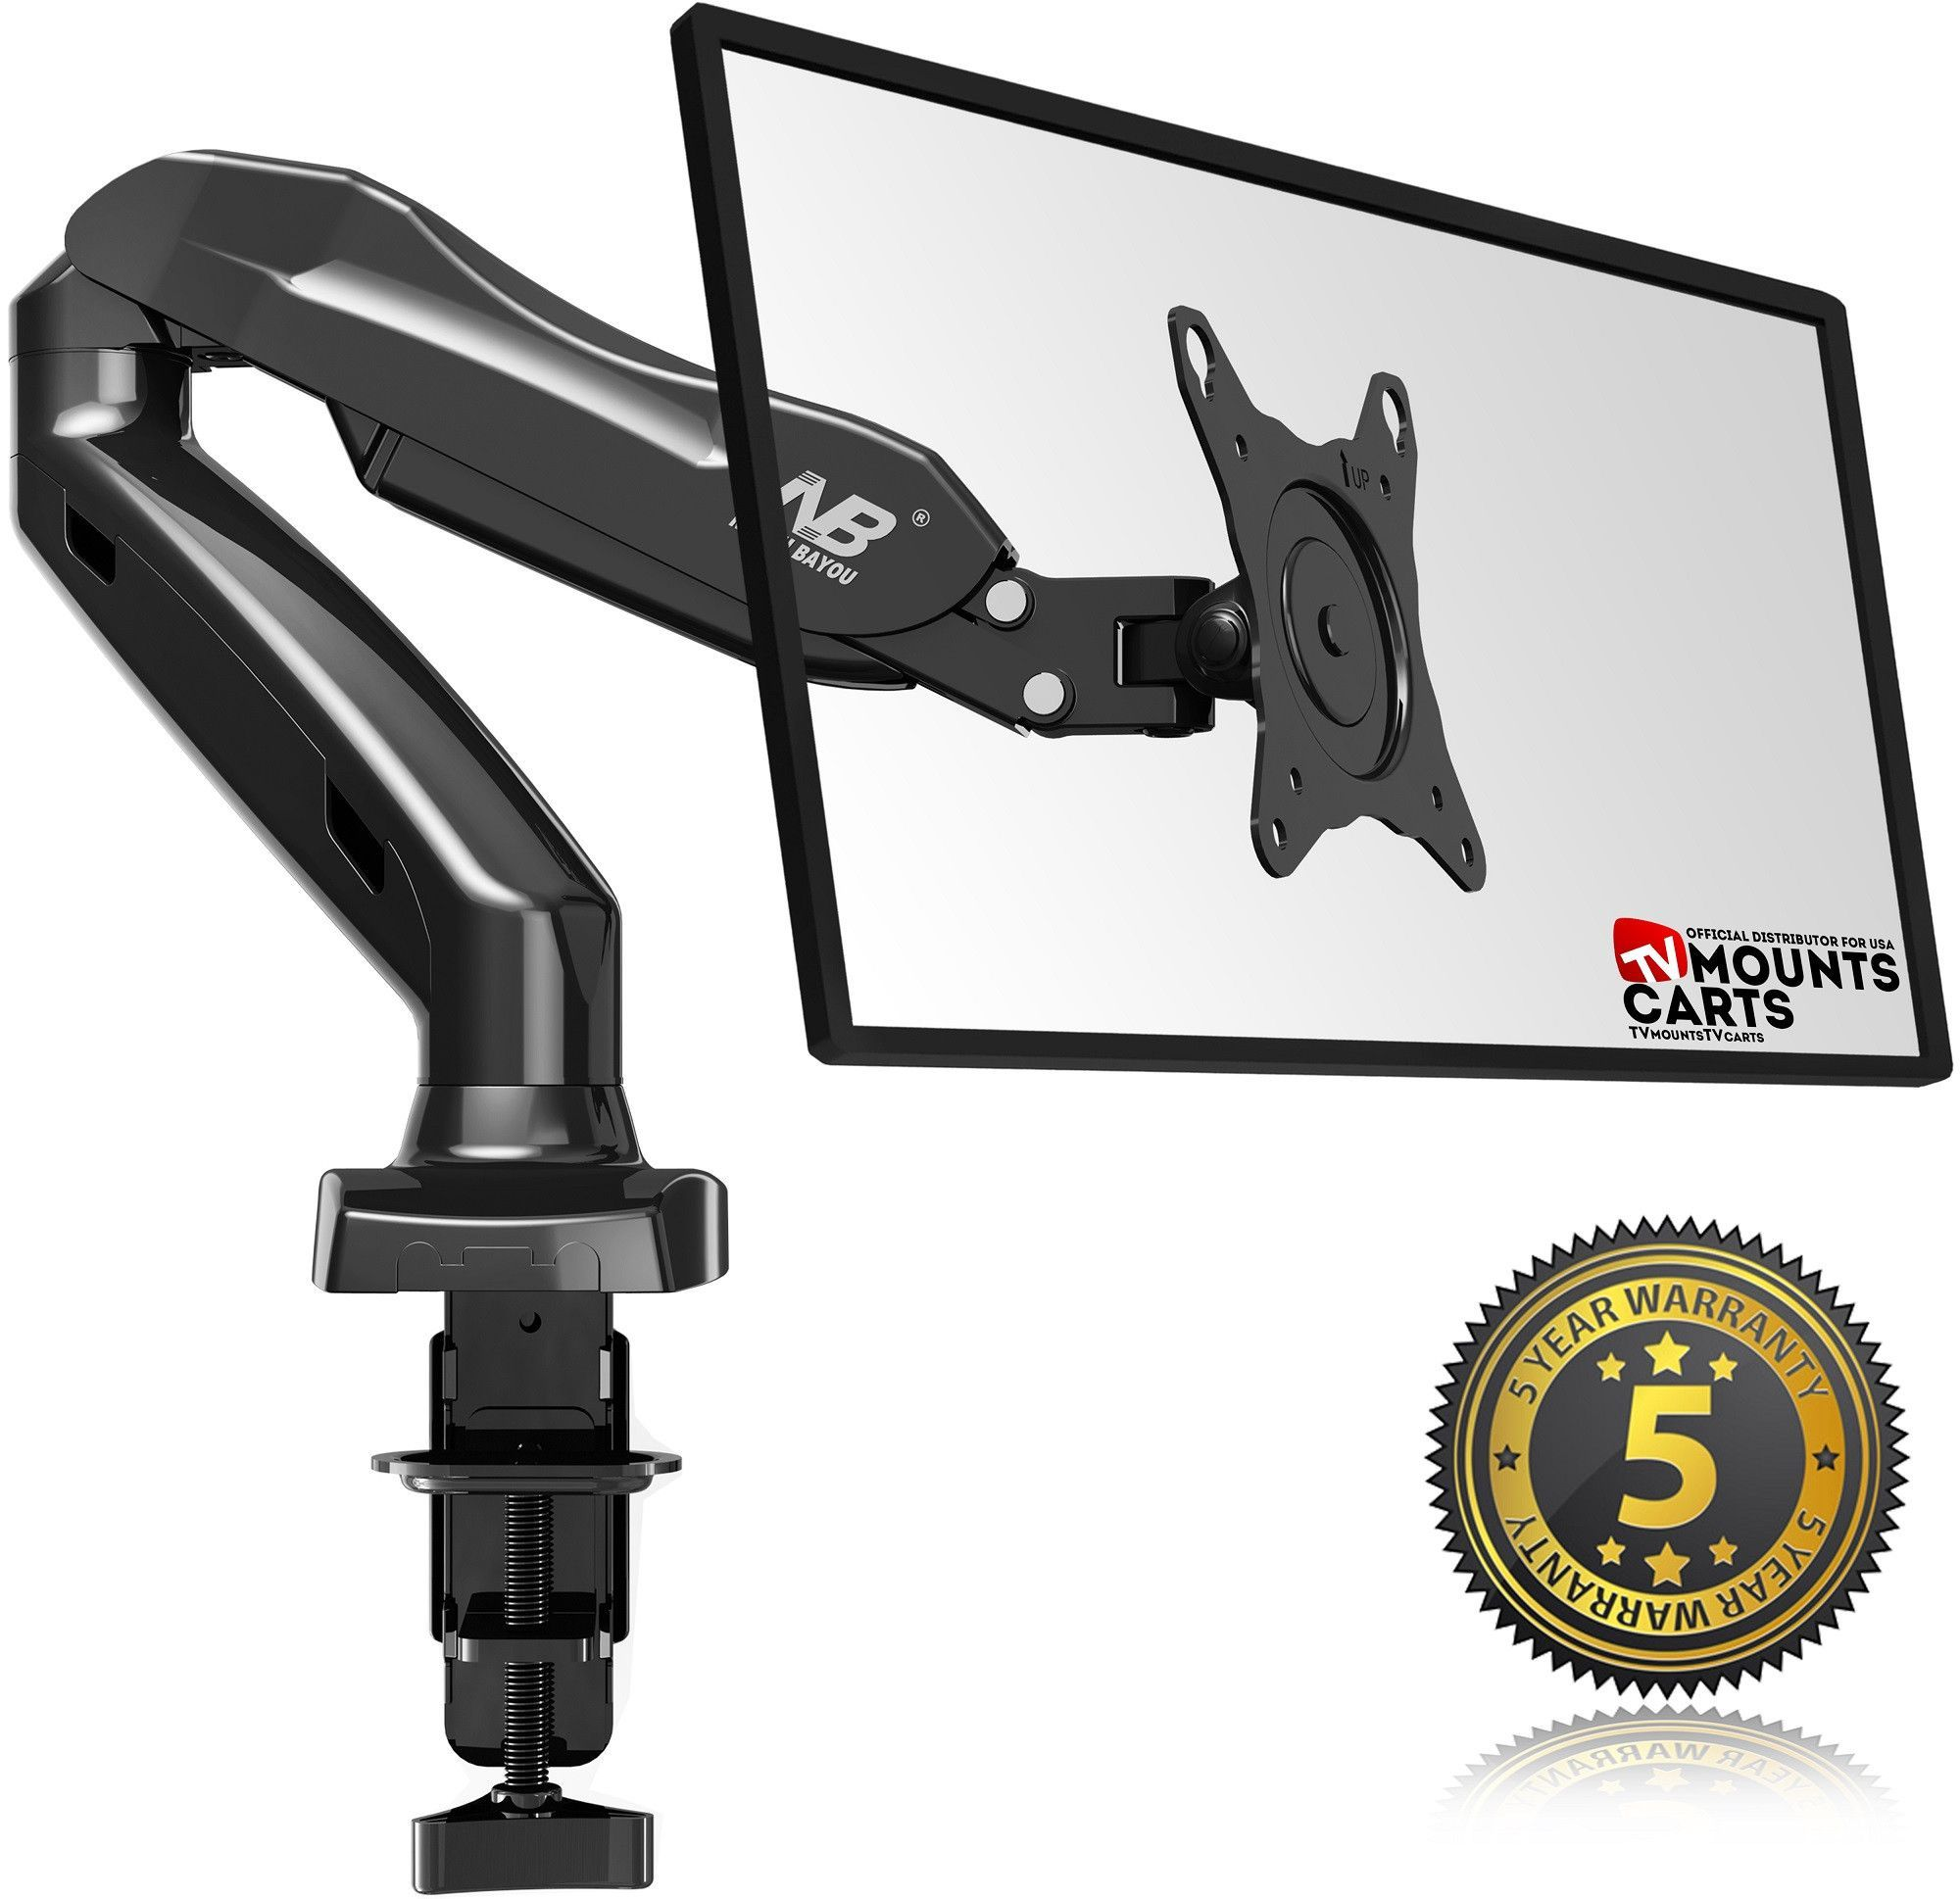 Description of workrite willow monitor arm willow is specifically - Cheap Tv Mount Buy Quality Motion Tv Mount Directly From China Monitor Holder Arm Suppliers Nb Lcd Led Monitor Holder Arm Gas Spring Full Motion Tv Mount